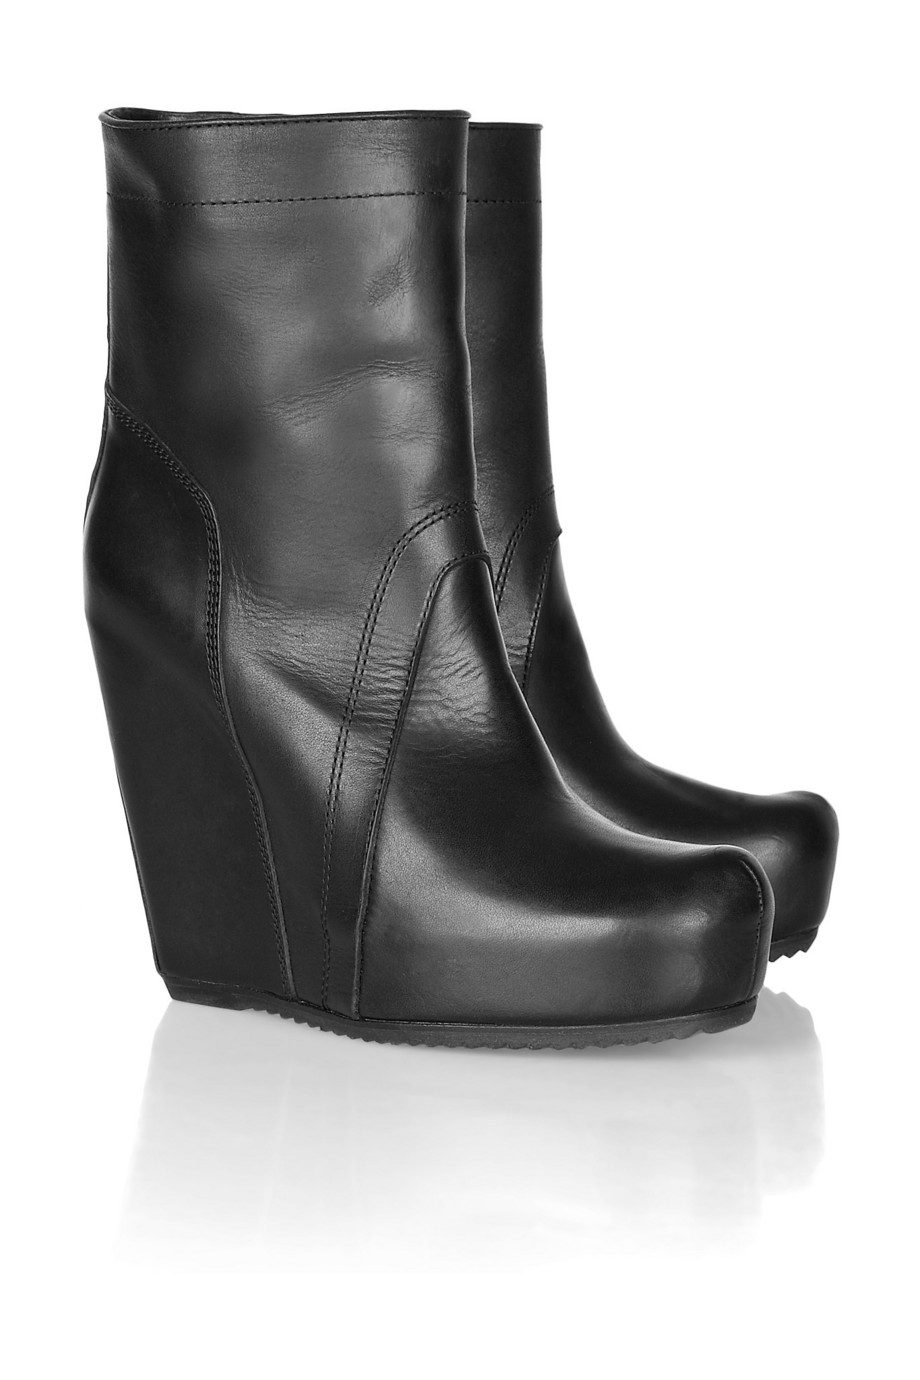 Rick Owens Leather Wedge Boots 100% guaranteed for sale collections sale online free shipping best y1wCy